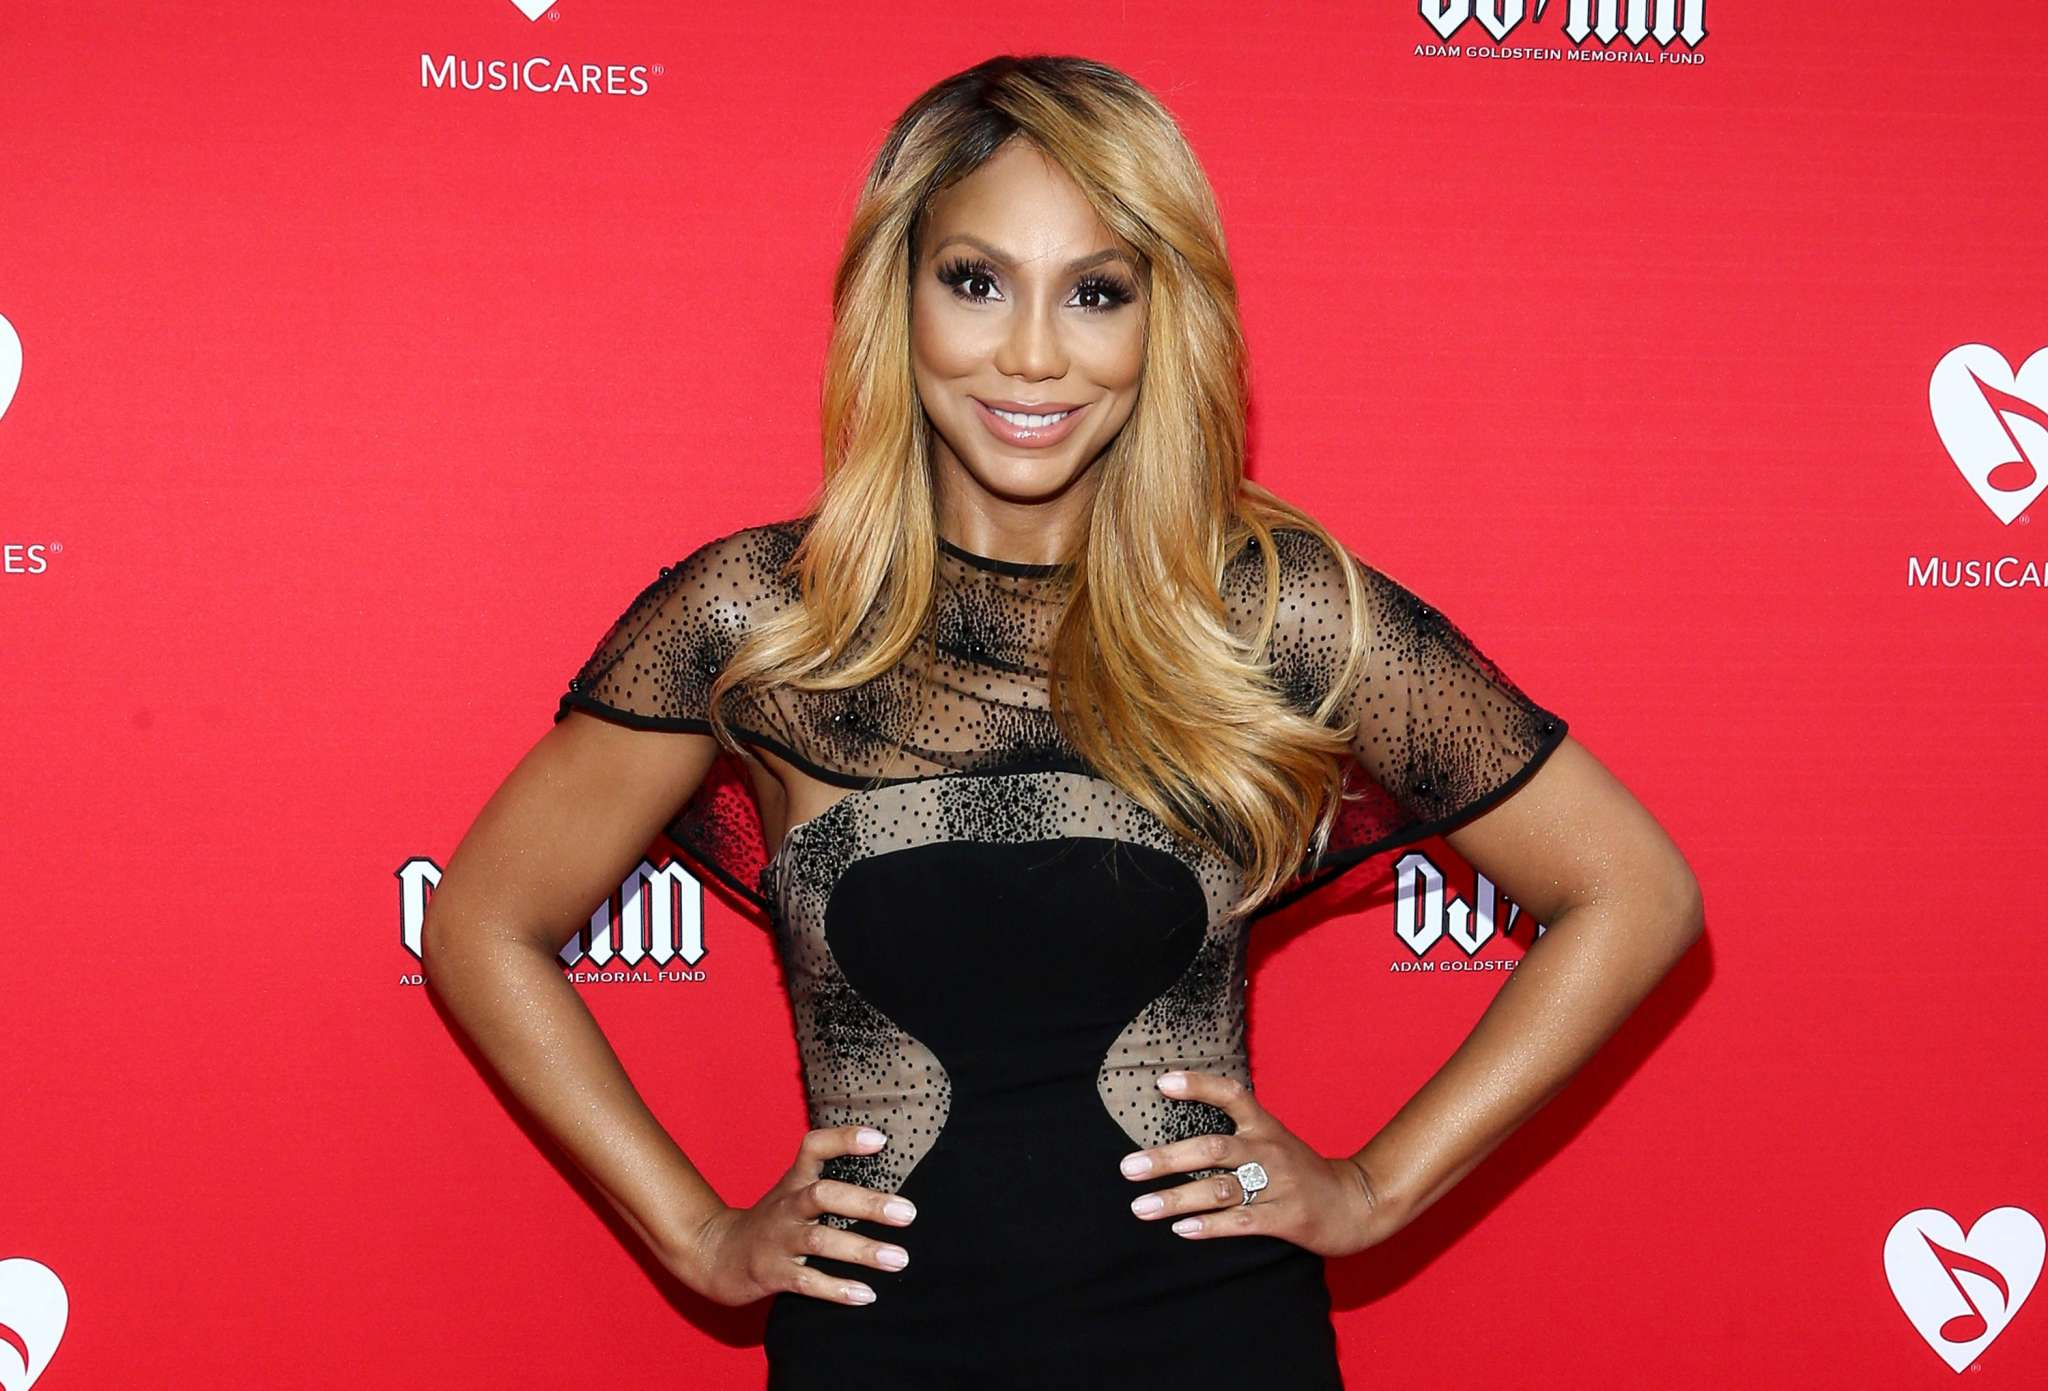 tamar-braxton-twerks-for-the-gram-and-fans-are-impressed-by-her-skills